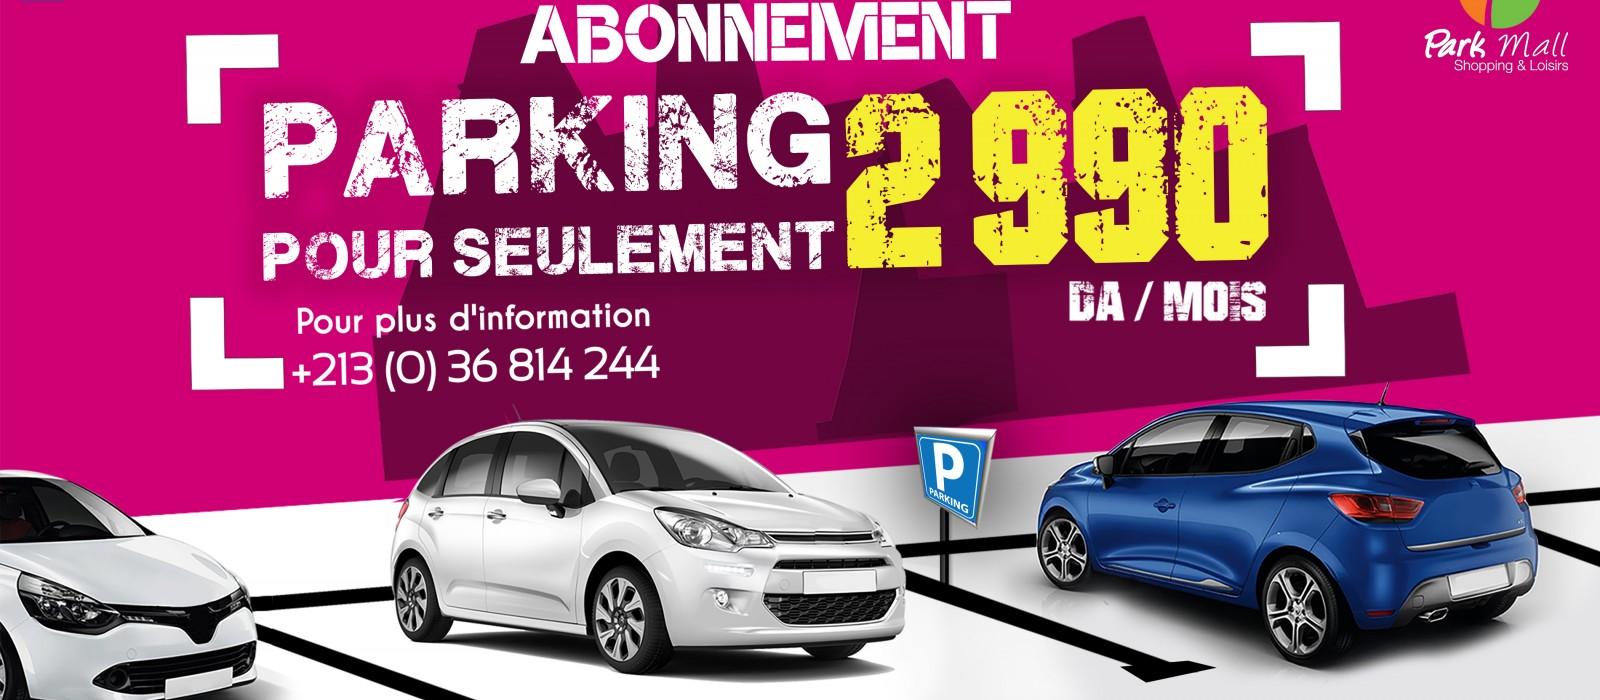 1400 places de Parking